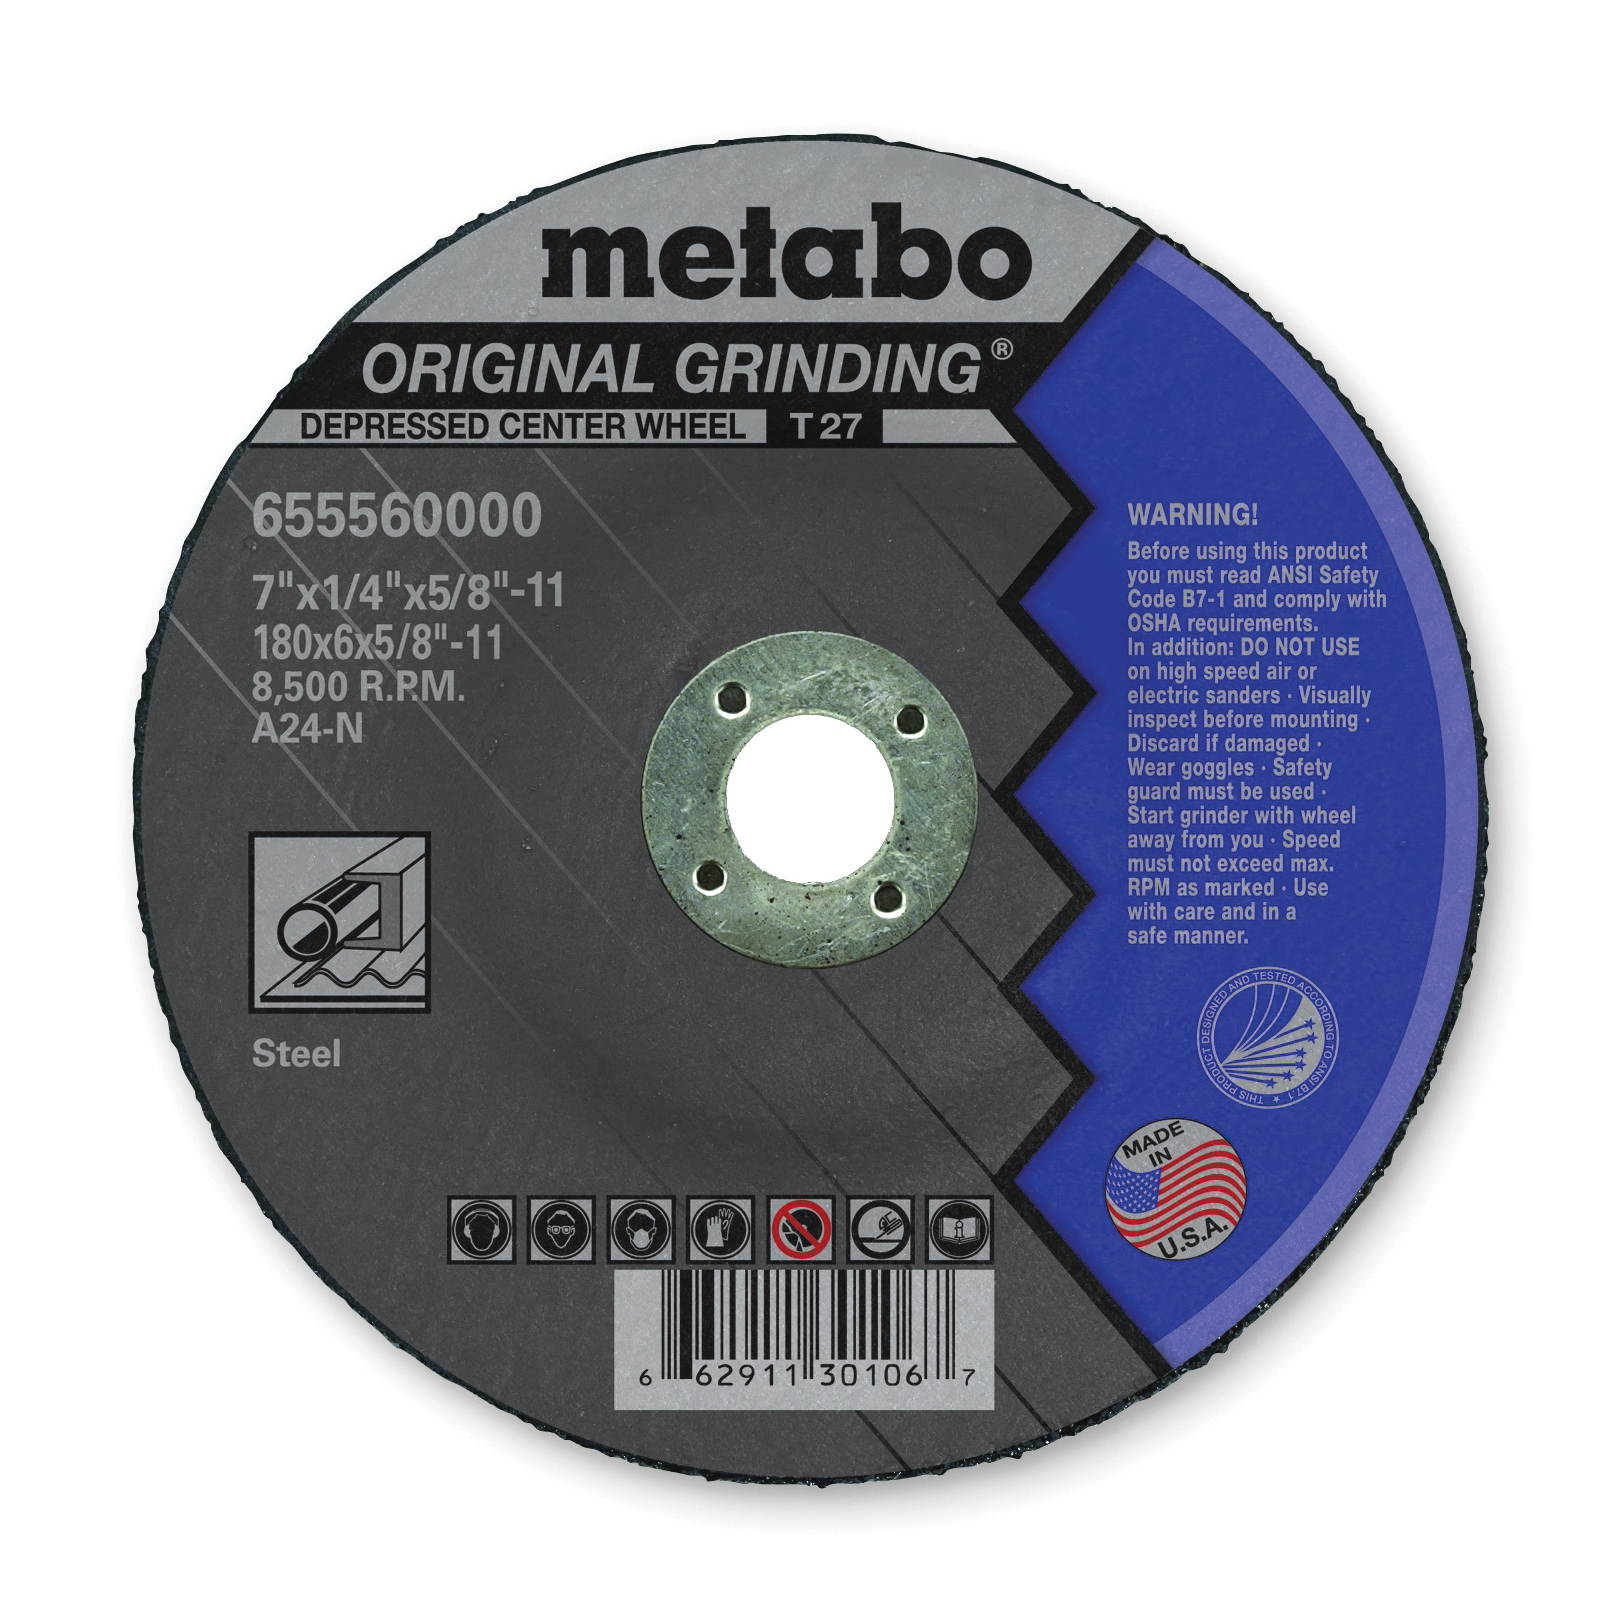 metabo® 655560000 Original Grinding® General Purpose Depressed Center Wheel With Hub, 7 in Dia x 1/4 in THK, A24N Grit, Aluminum Oxide Abrasive